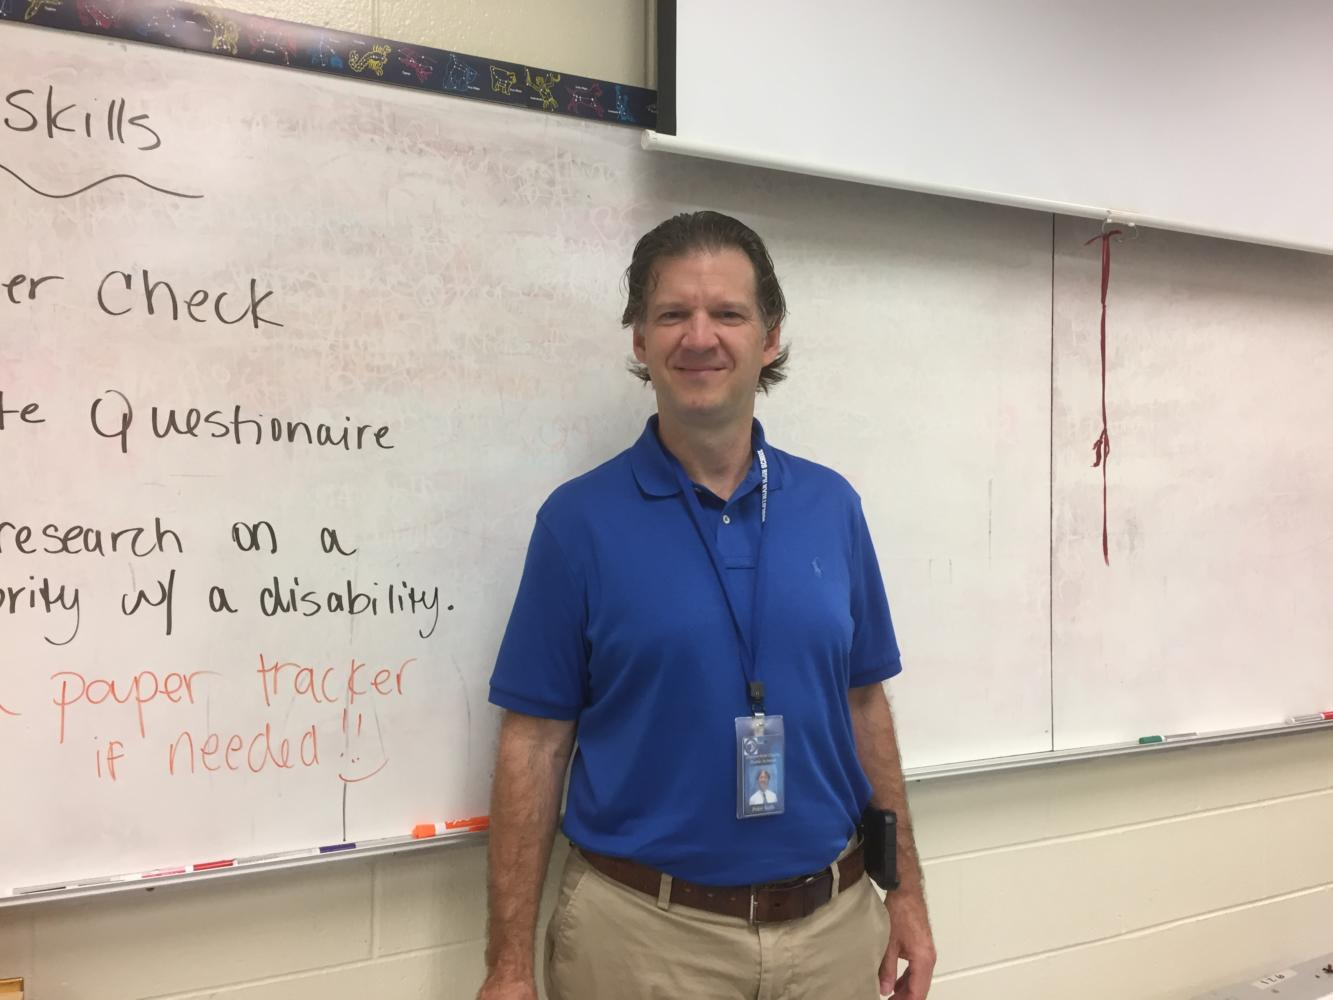 Mr. Peter Nalls, who teaches American Sign Language, begins his career at Midlo.